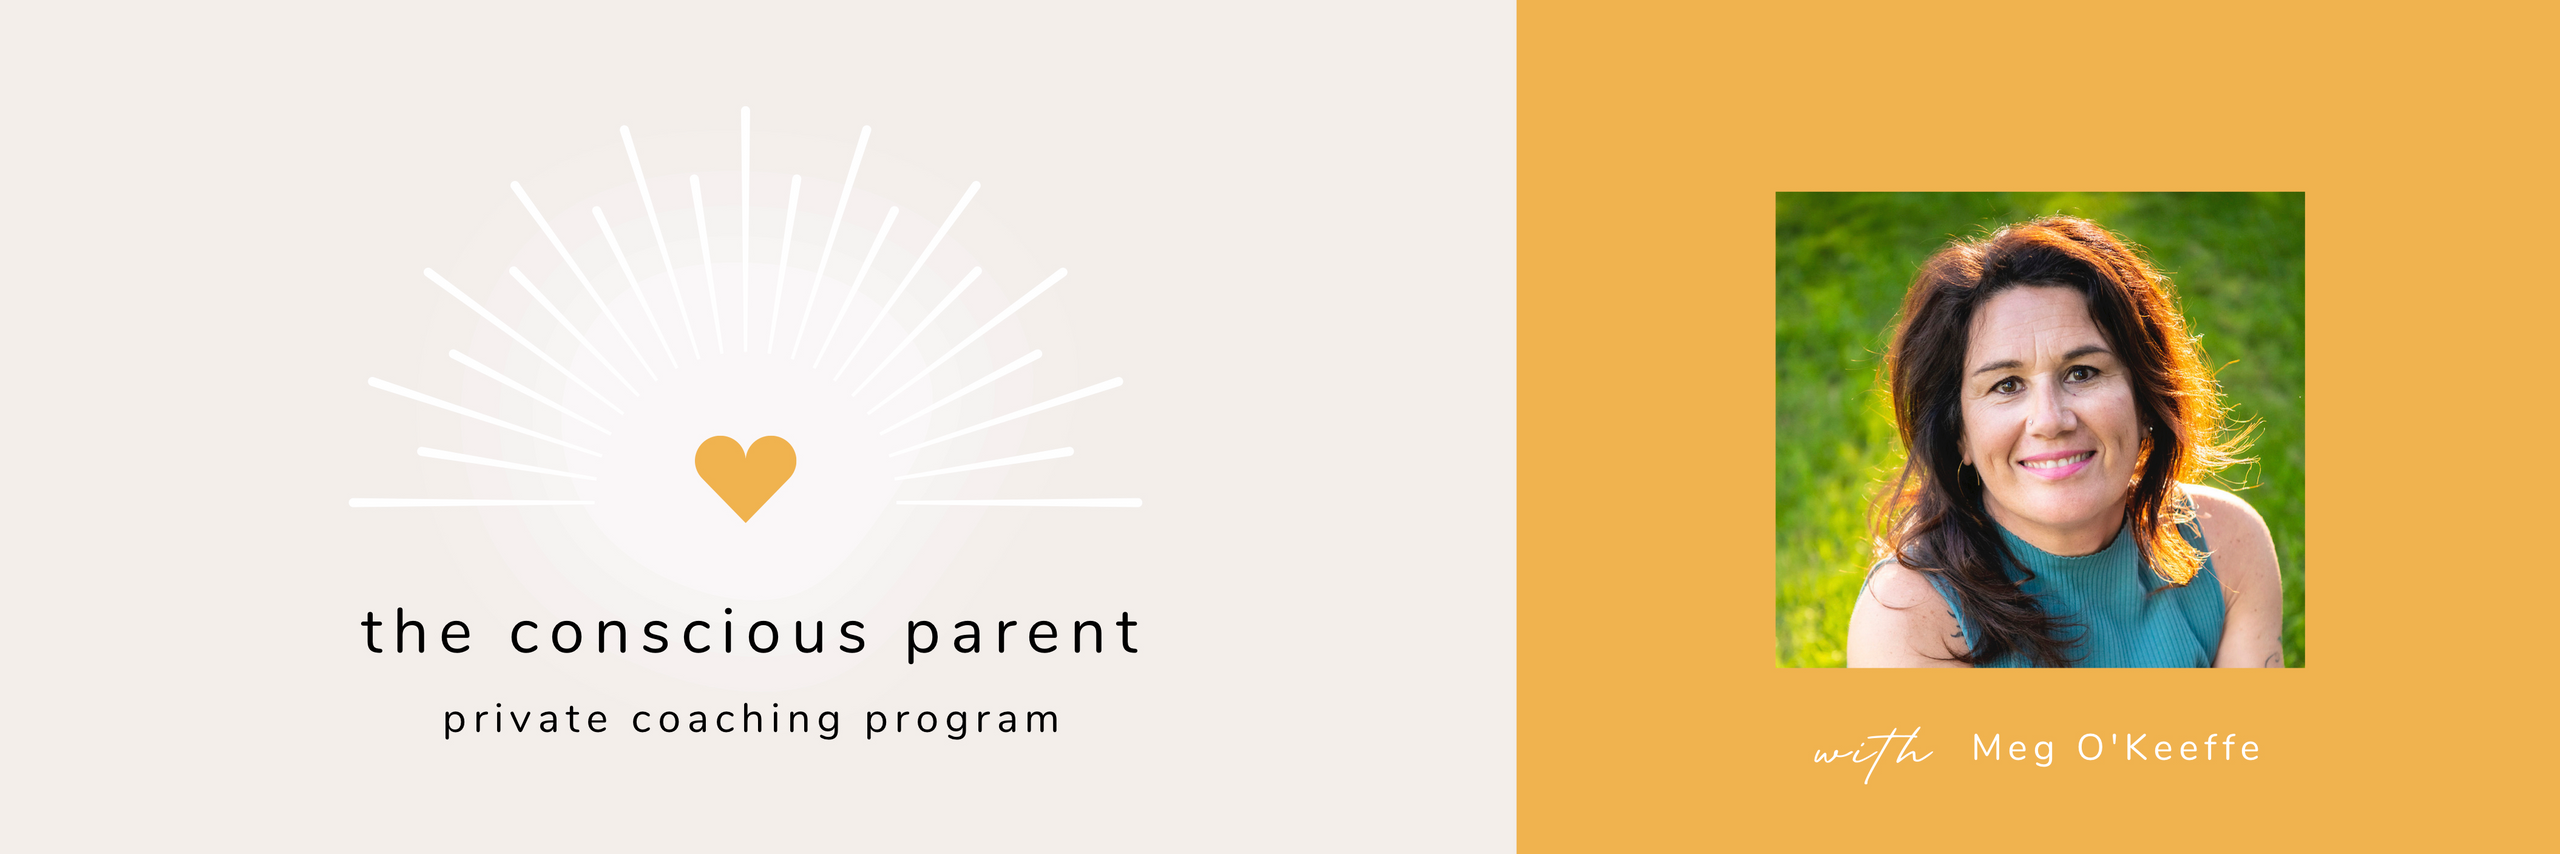 The Conscious Parent Private Coaching Program with Meg O'Keeffe